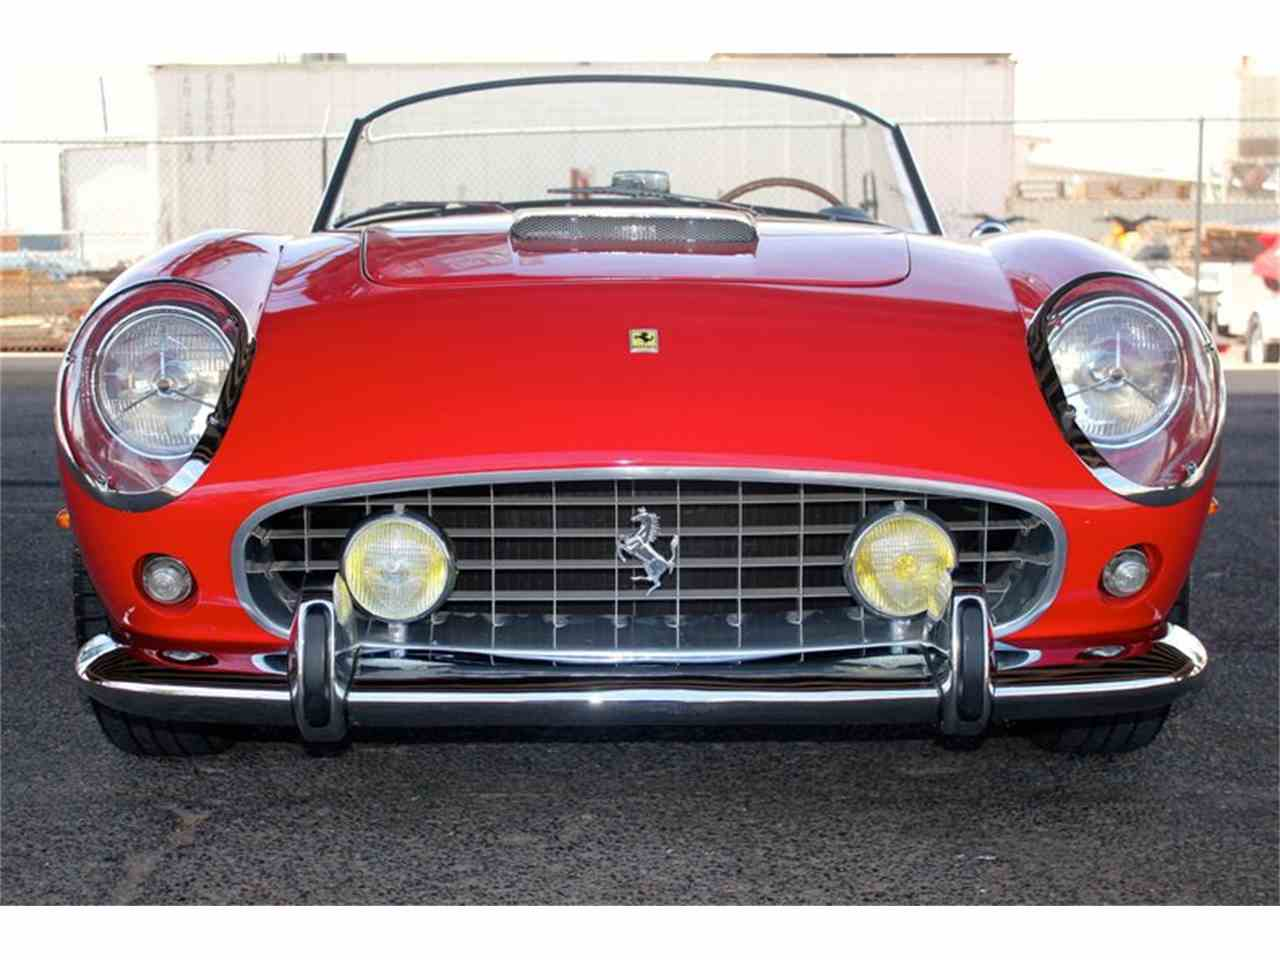 Large Picture of Classic '63 Ferrari 250 GTE California Spyder located in Phoenix Arizona Auction Vehicle Offered by EMG - J2E5